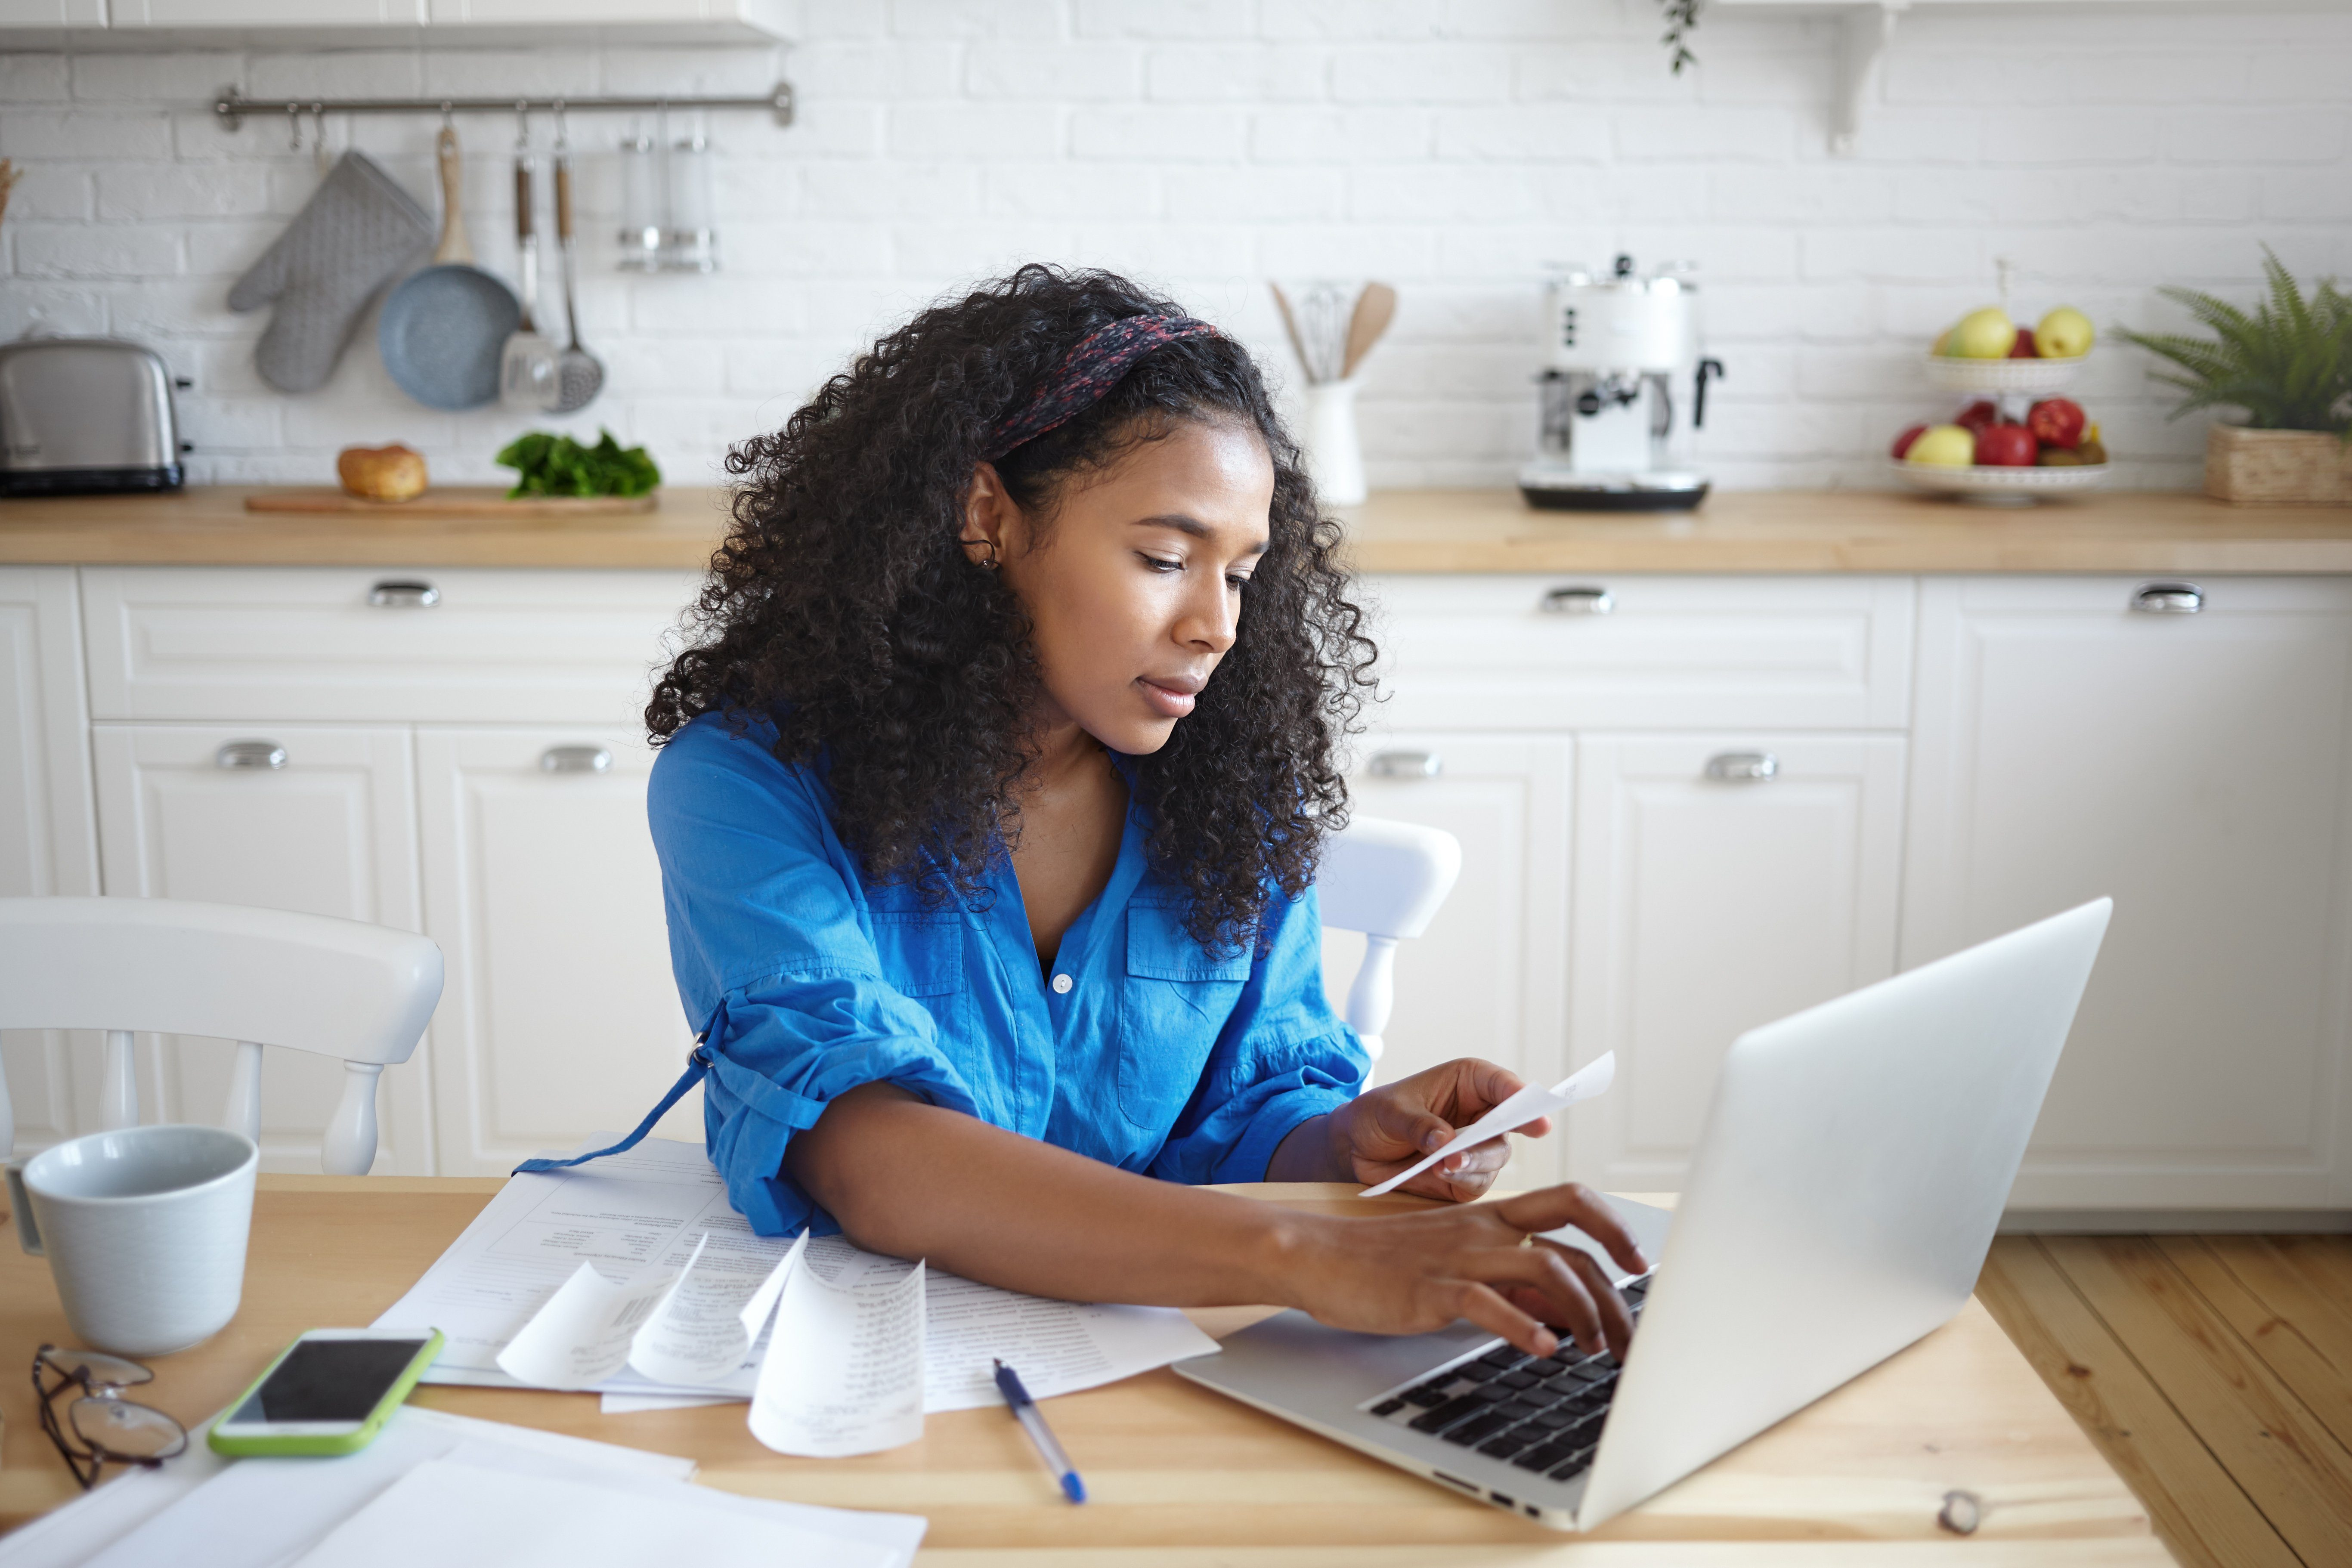 Candid shot of seriousn concentrated young African female using modern technology while paying for gas and electricity online, hoding receipt and typing on laptop. People, finances and home budget